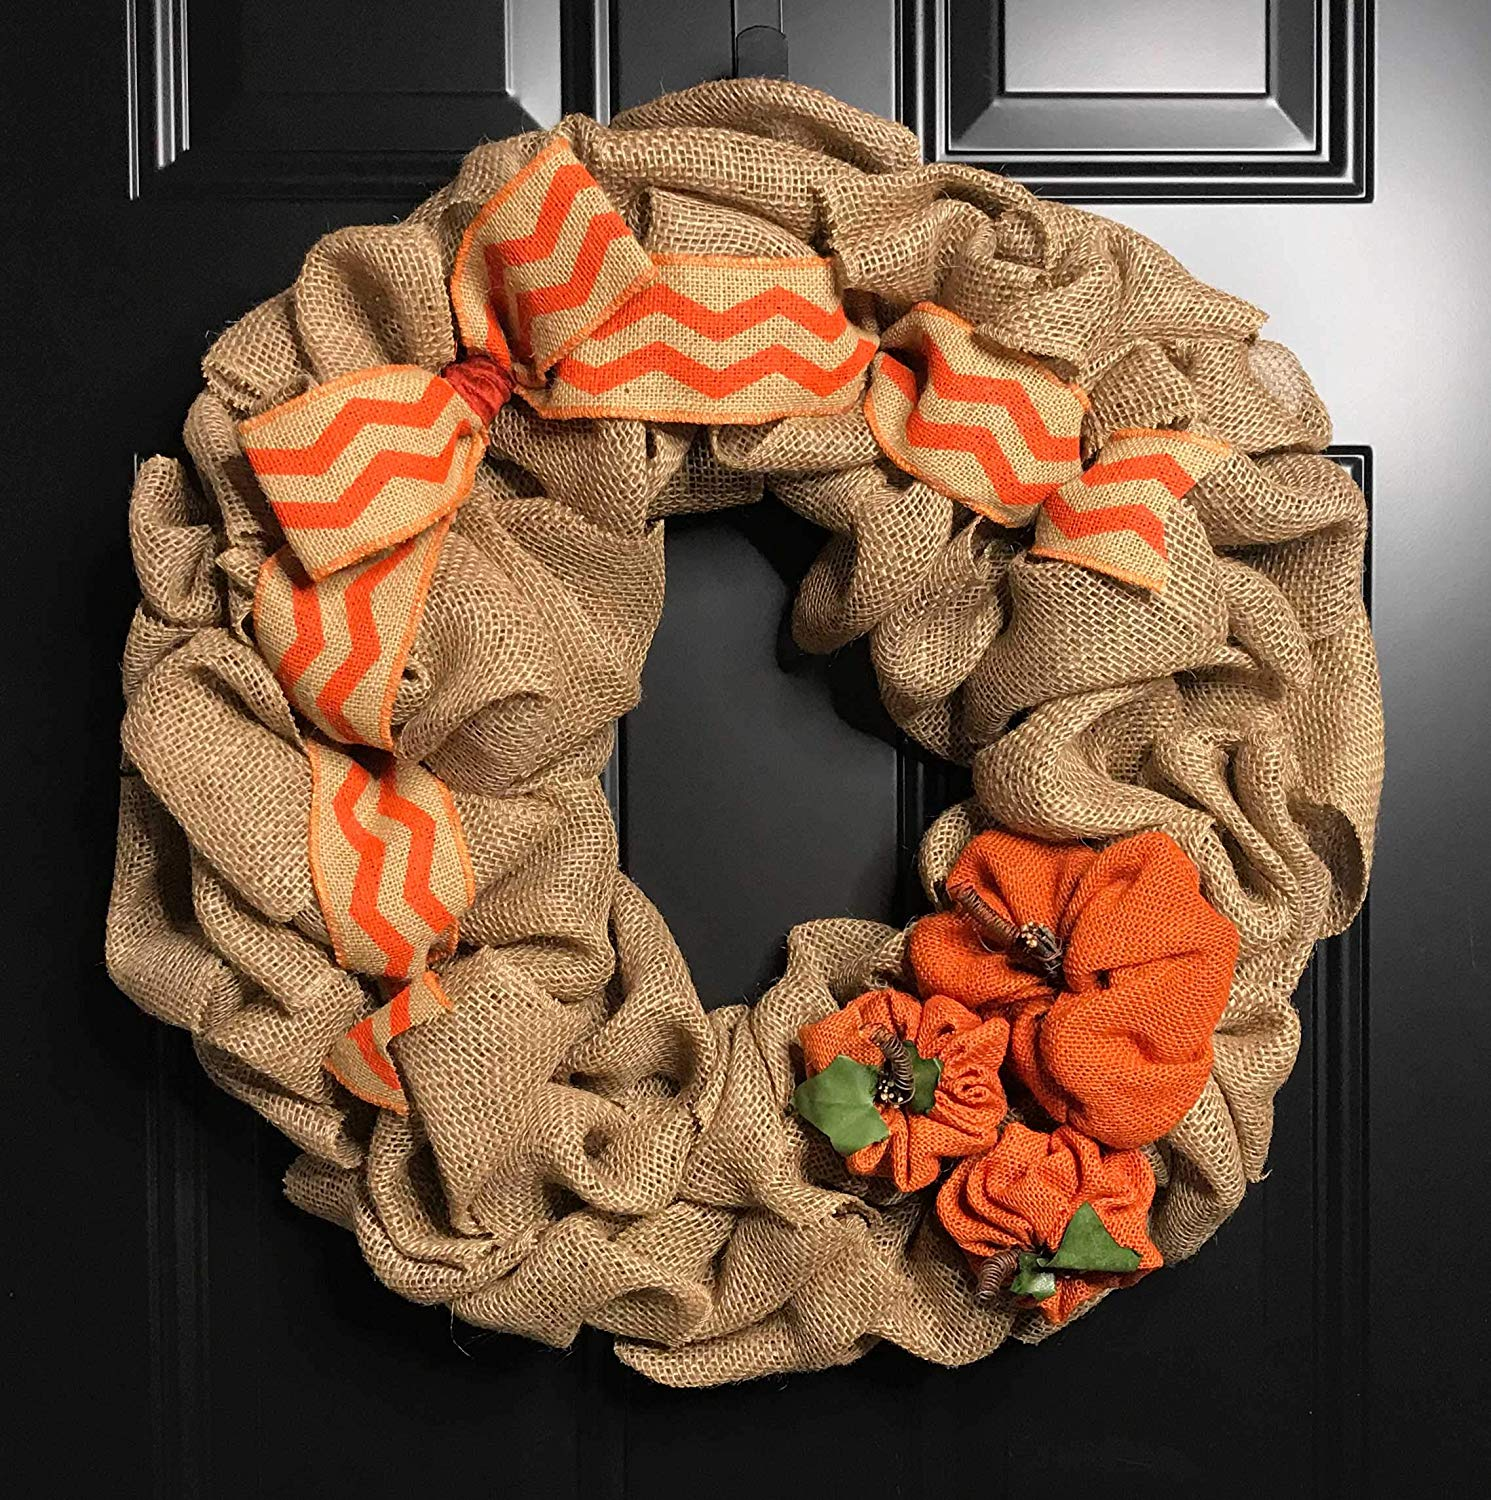 FALL WREATH-Fall Wreaths for Front Door-Thanksgiving Wreath-Pumpkin Wreath-Autumn Wreath-Fall Door Wreaths-Front Door Wreaths-Burlap Wreath